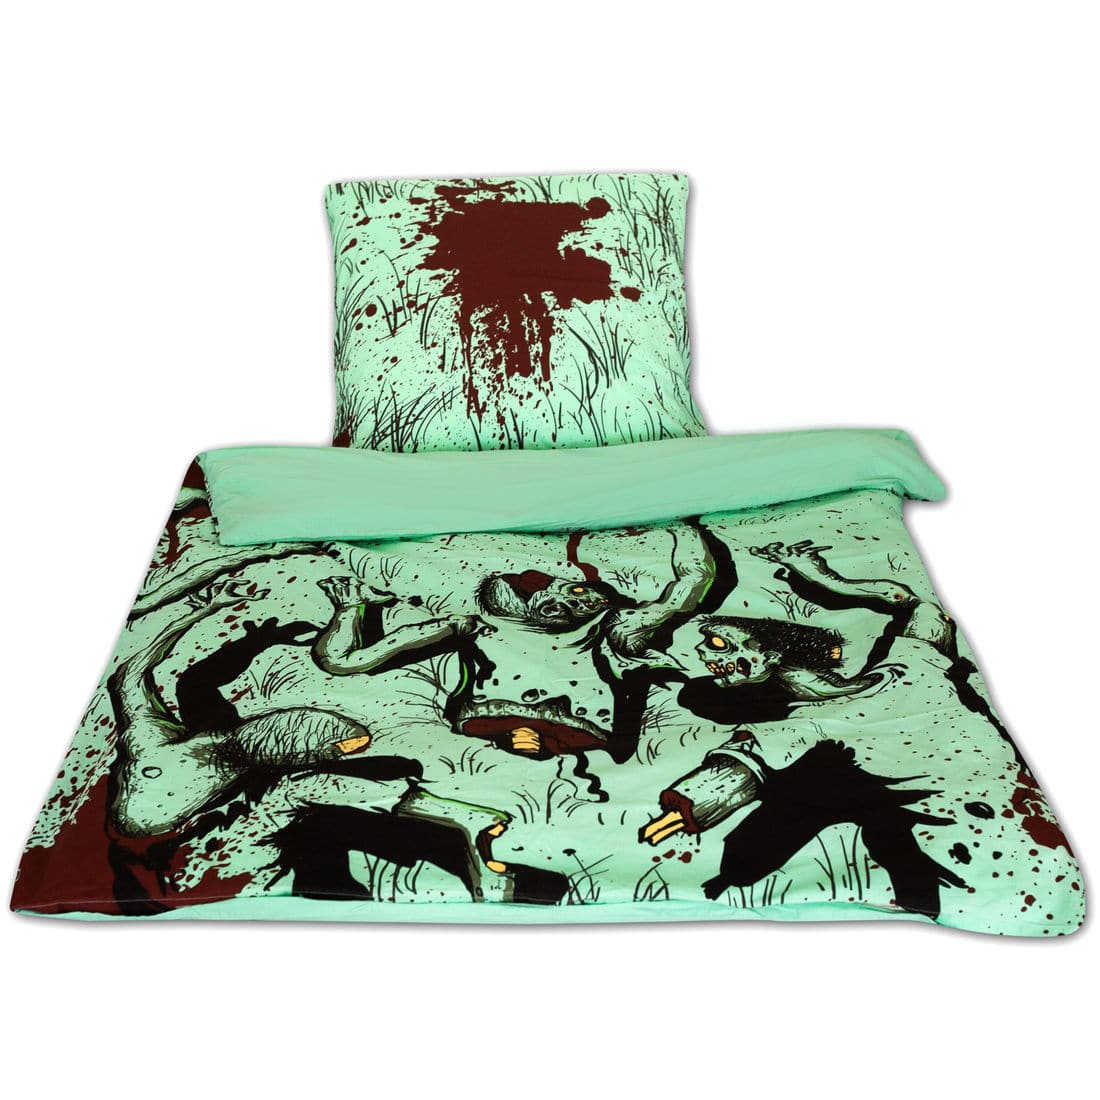 zombie bettw sche ab 44 g nstig kaufen 11 2018. Black Bedroom Furniture Sets. Home Design Ideas